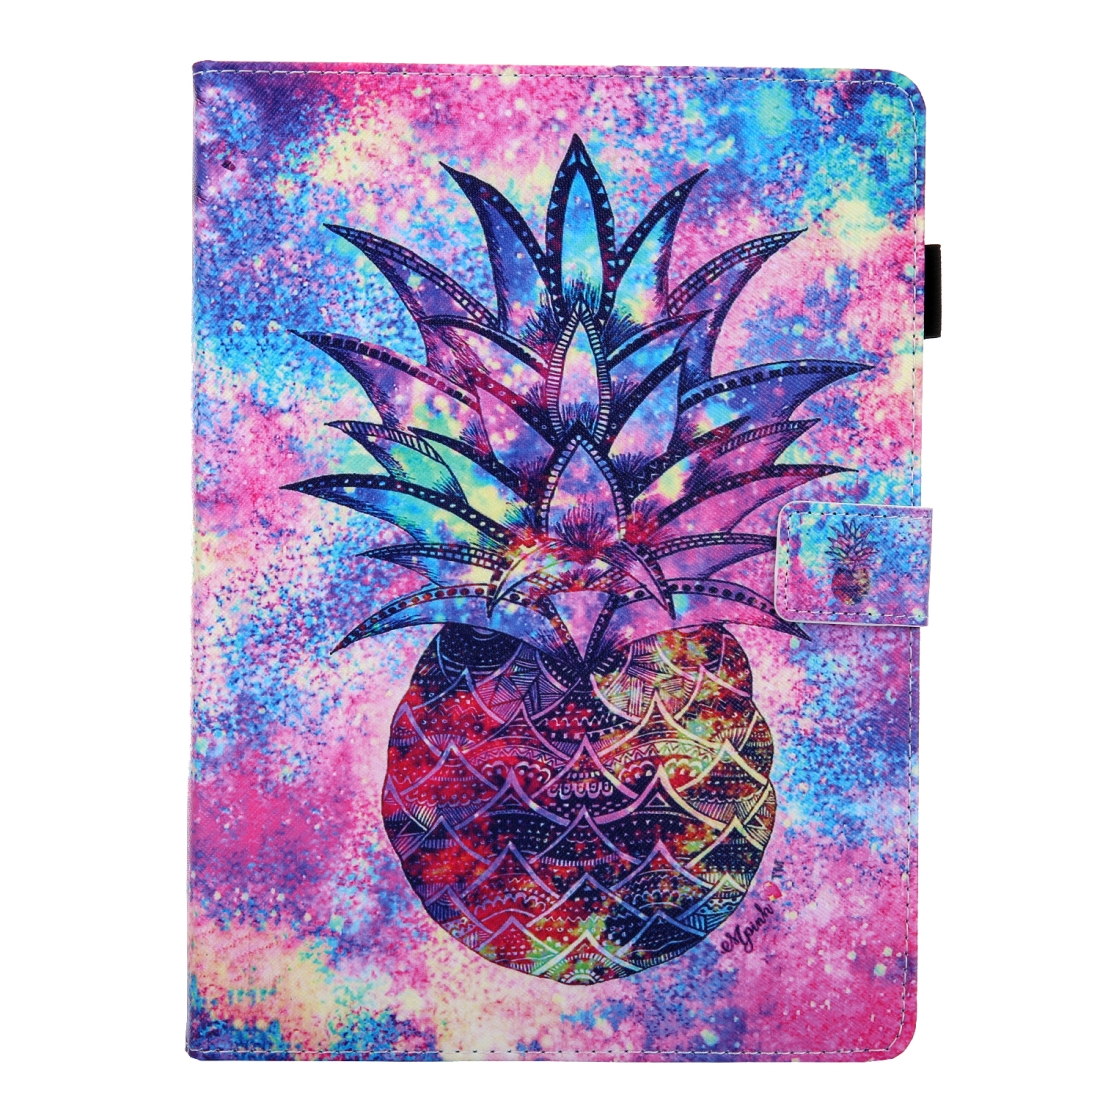 3D Leather Case with Sleeve  iPad 10.5 Case (Pineapple)